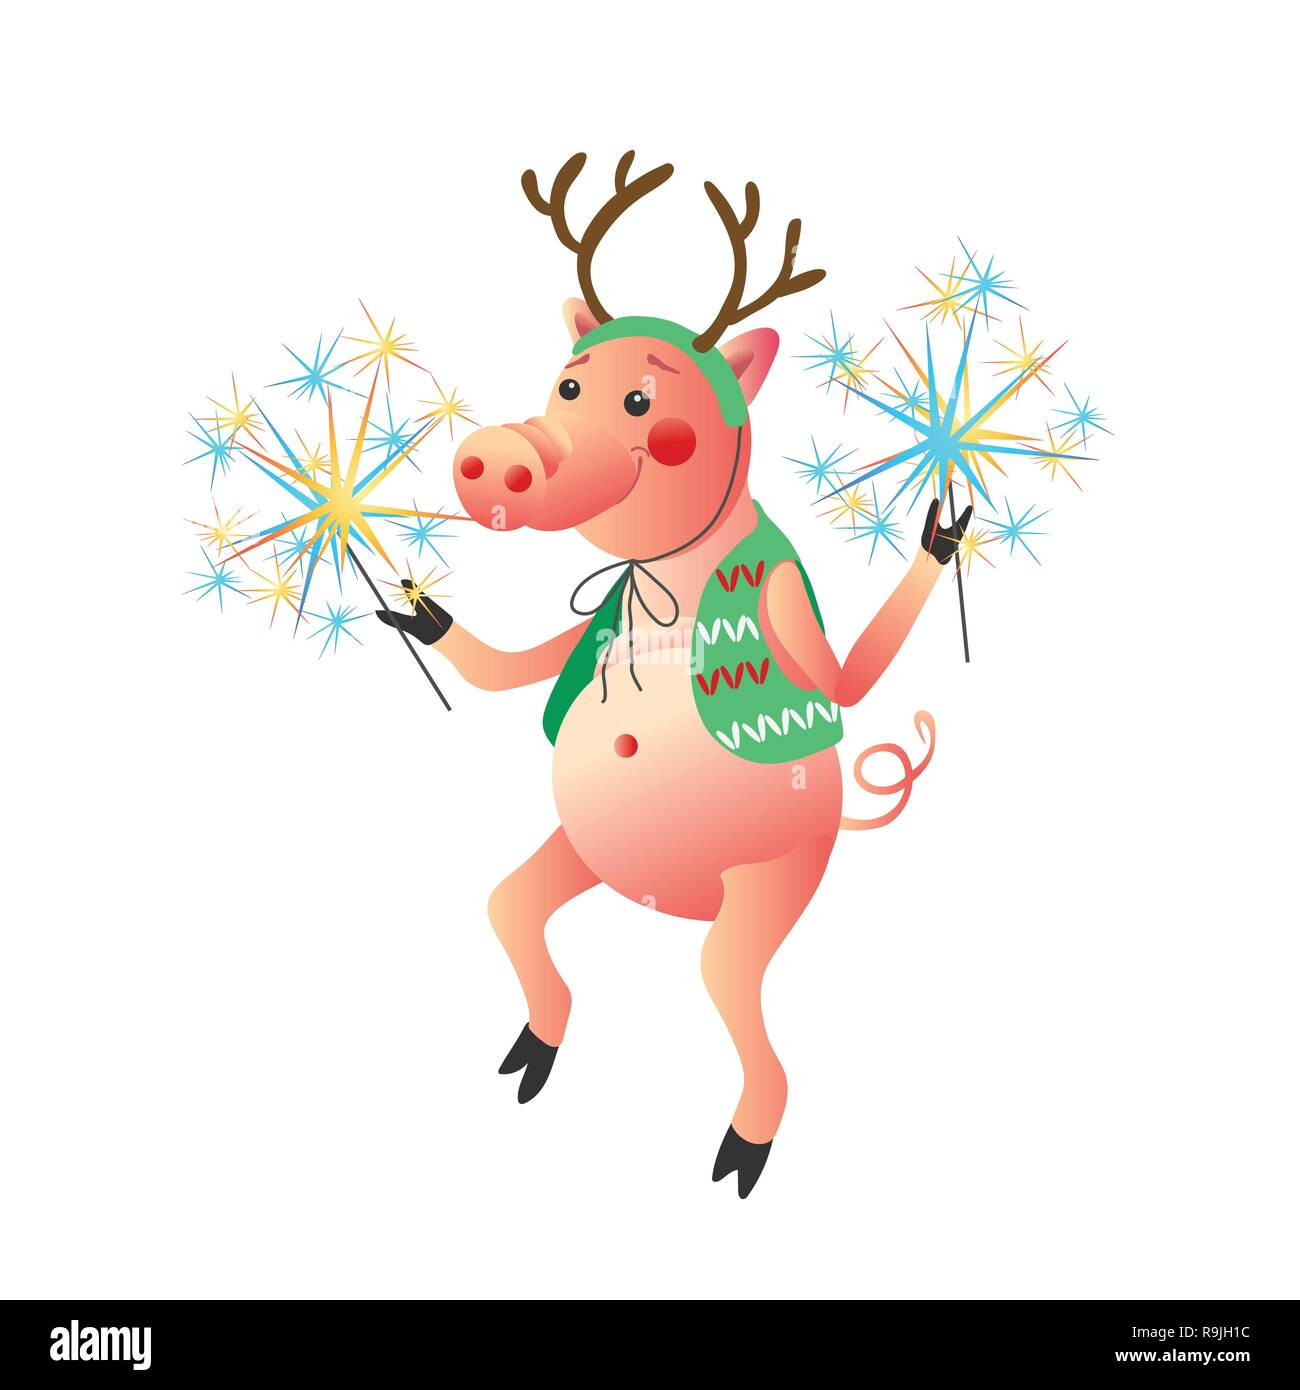 Funny pig dancing with sparklers New Year symbol  isolated on the white background - Stock Vector